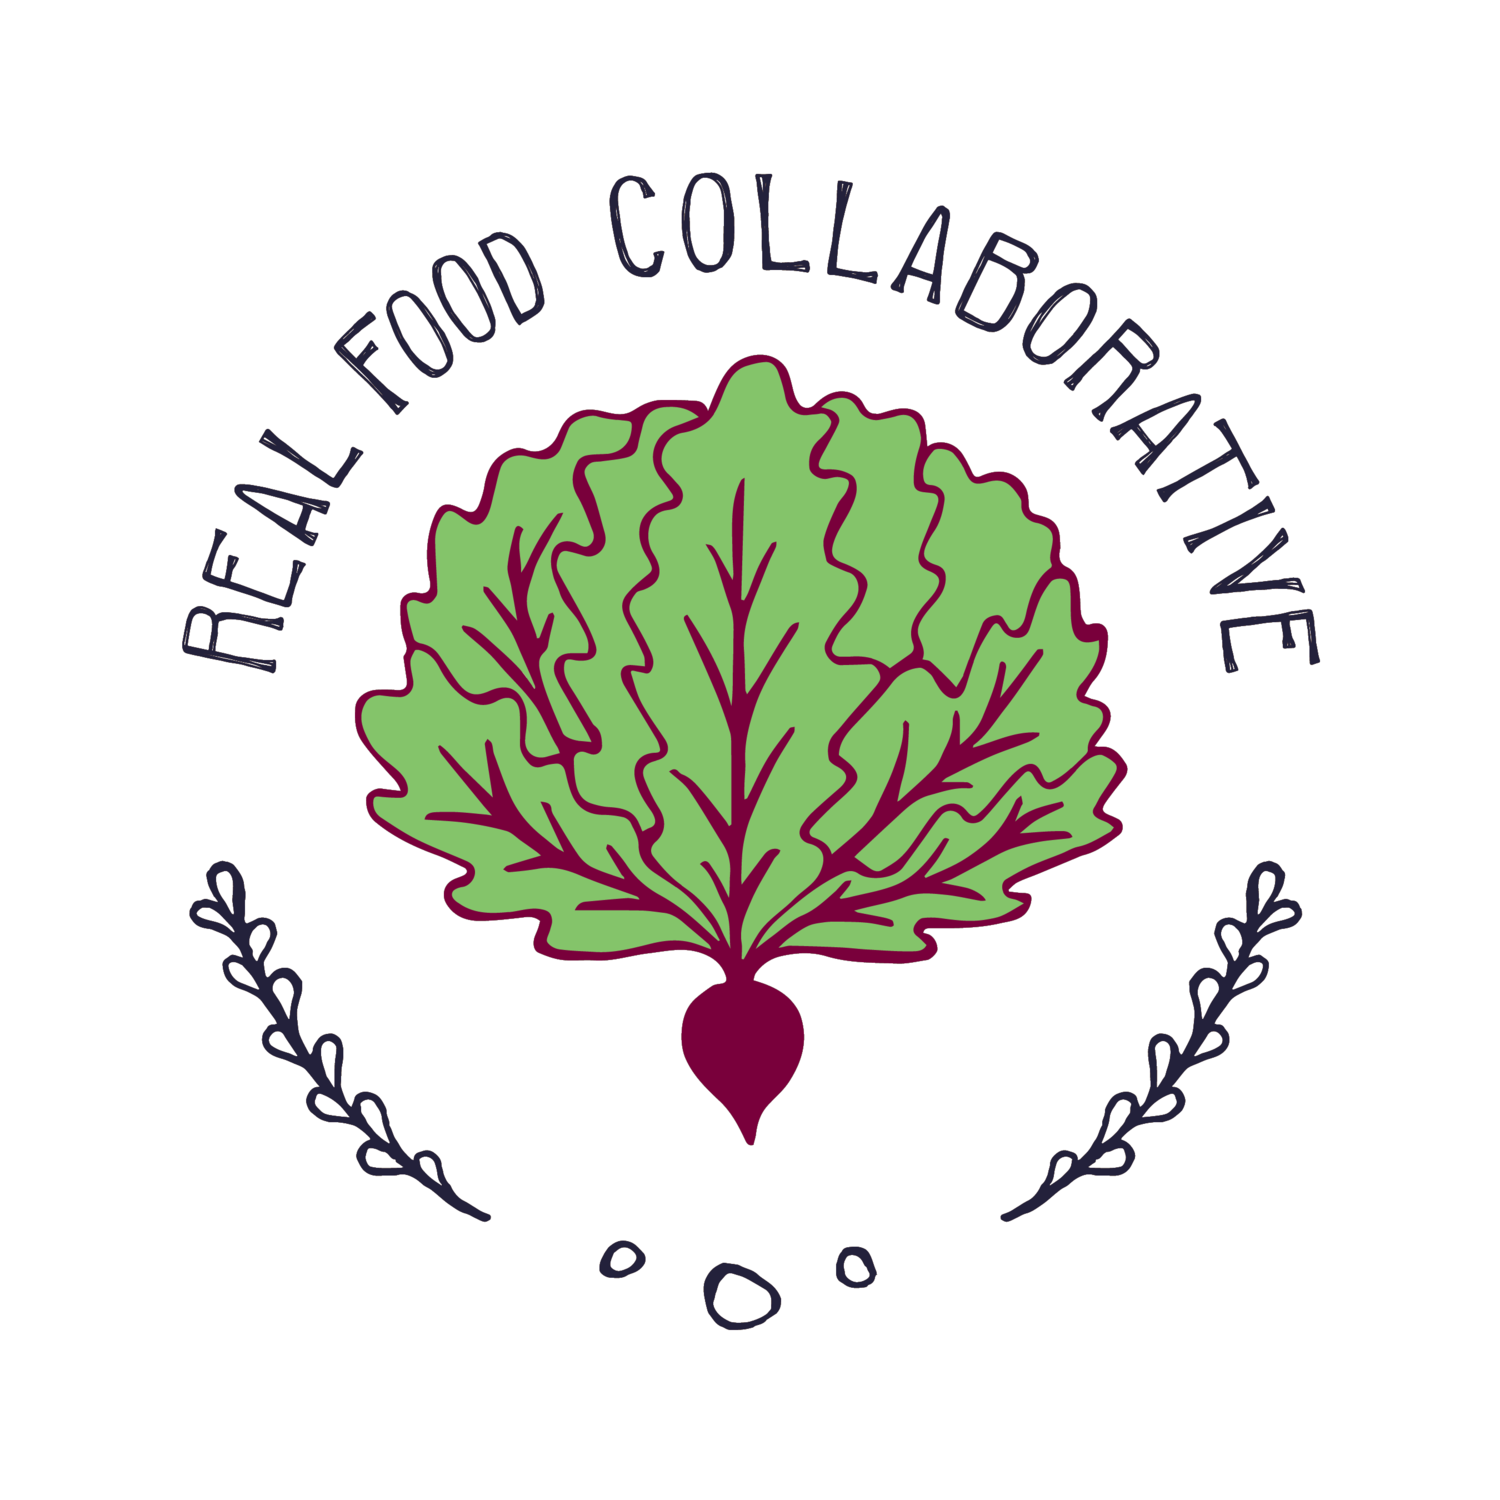 The Real Food Collaborative